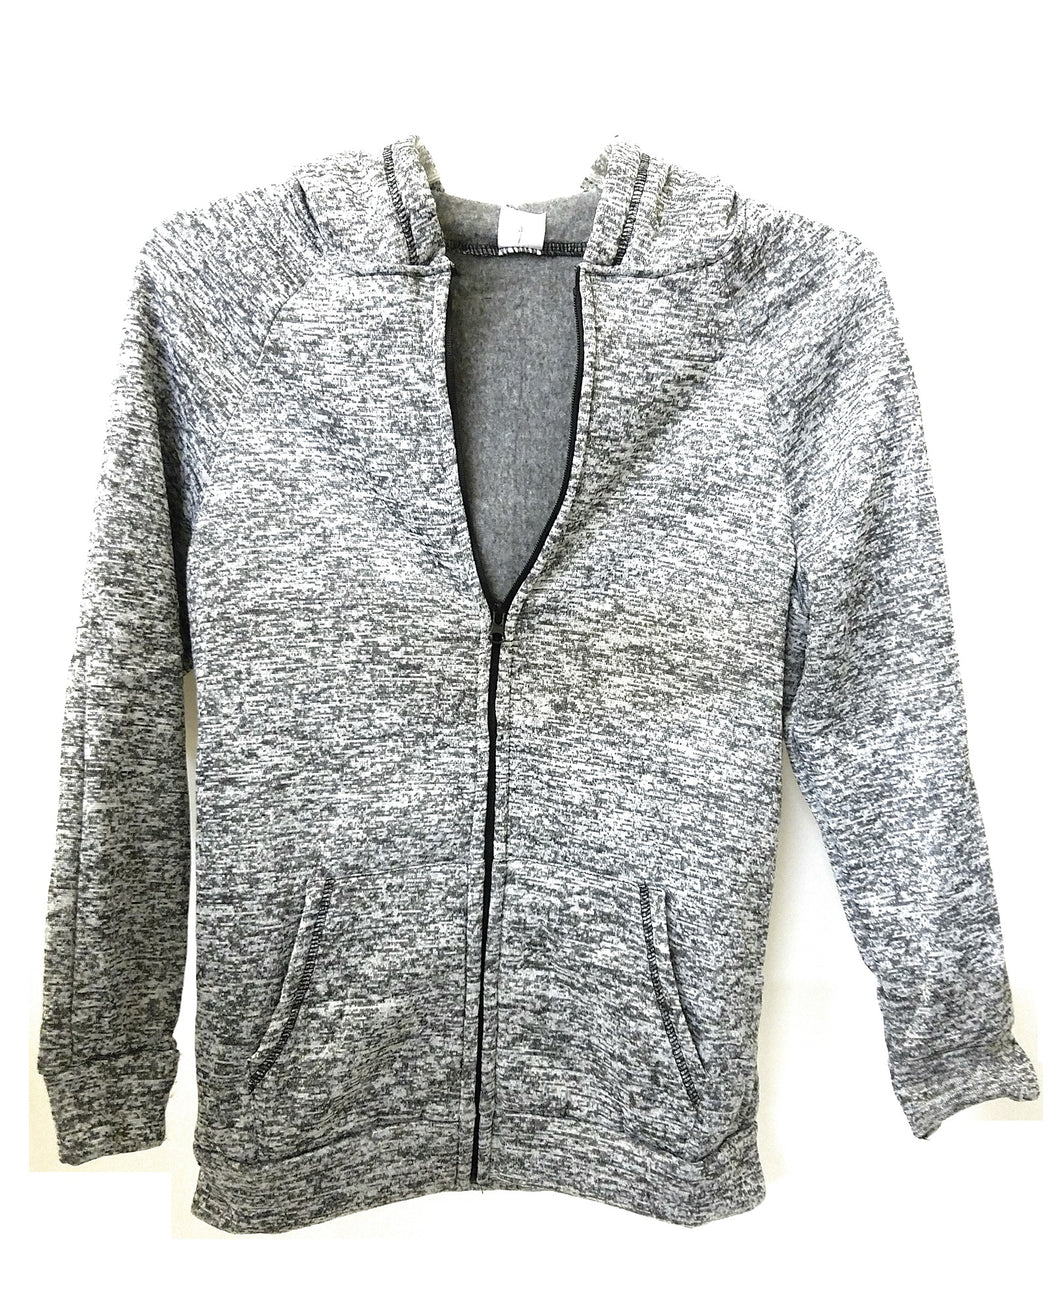 Striped Zipper Womens Ladies Jacket Sweatshirt Coat Hoodie Front Pockets Gray